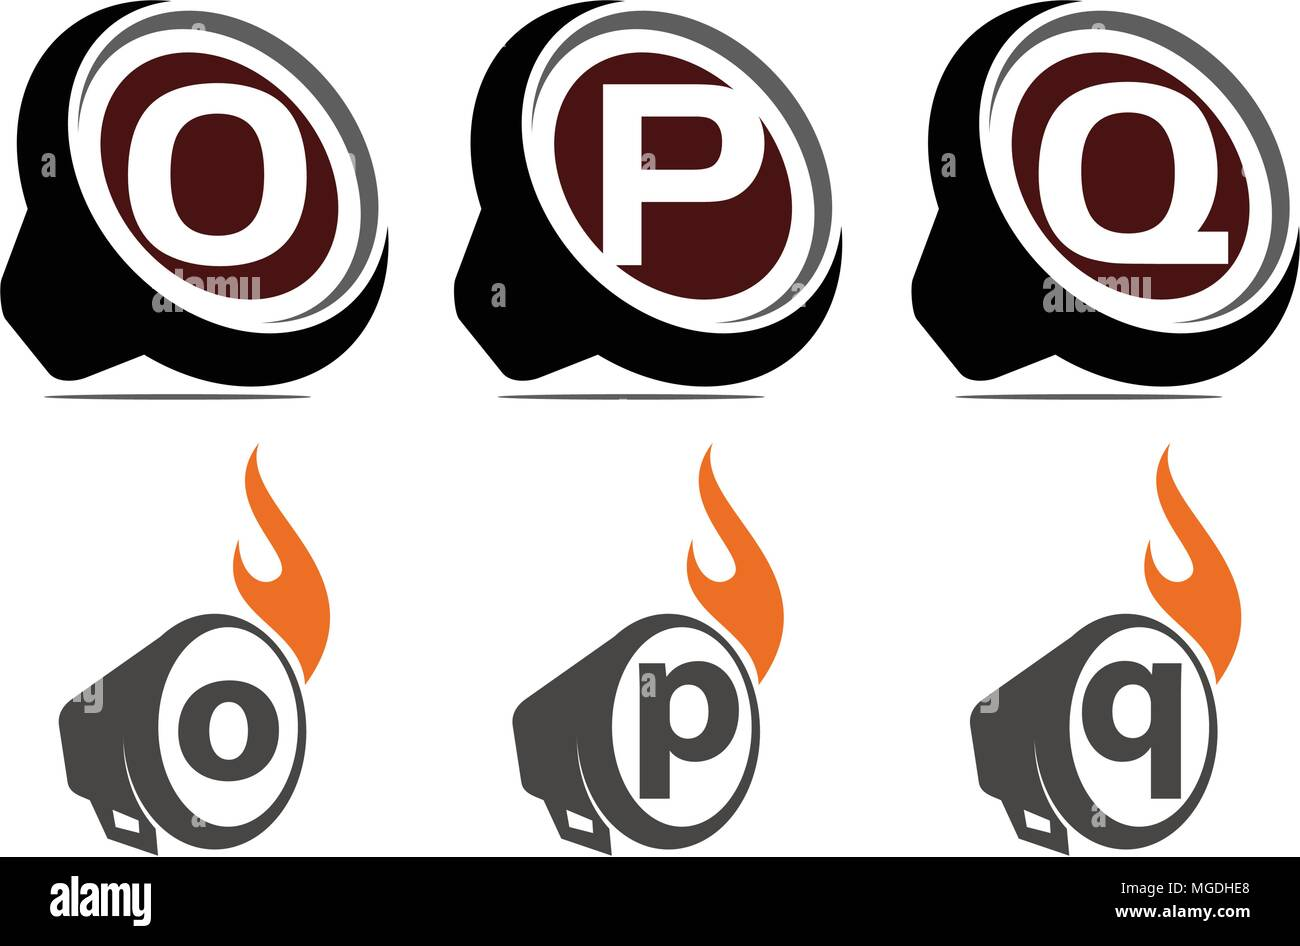 Sound Video Service Production Set - Stock Vector